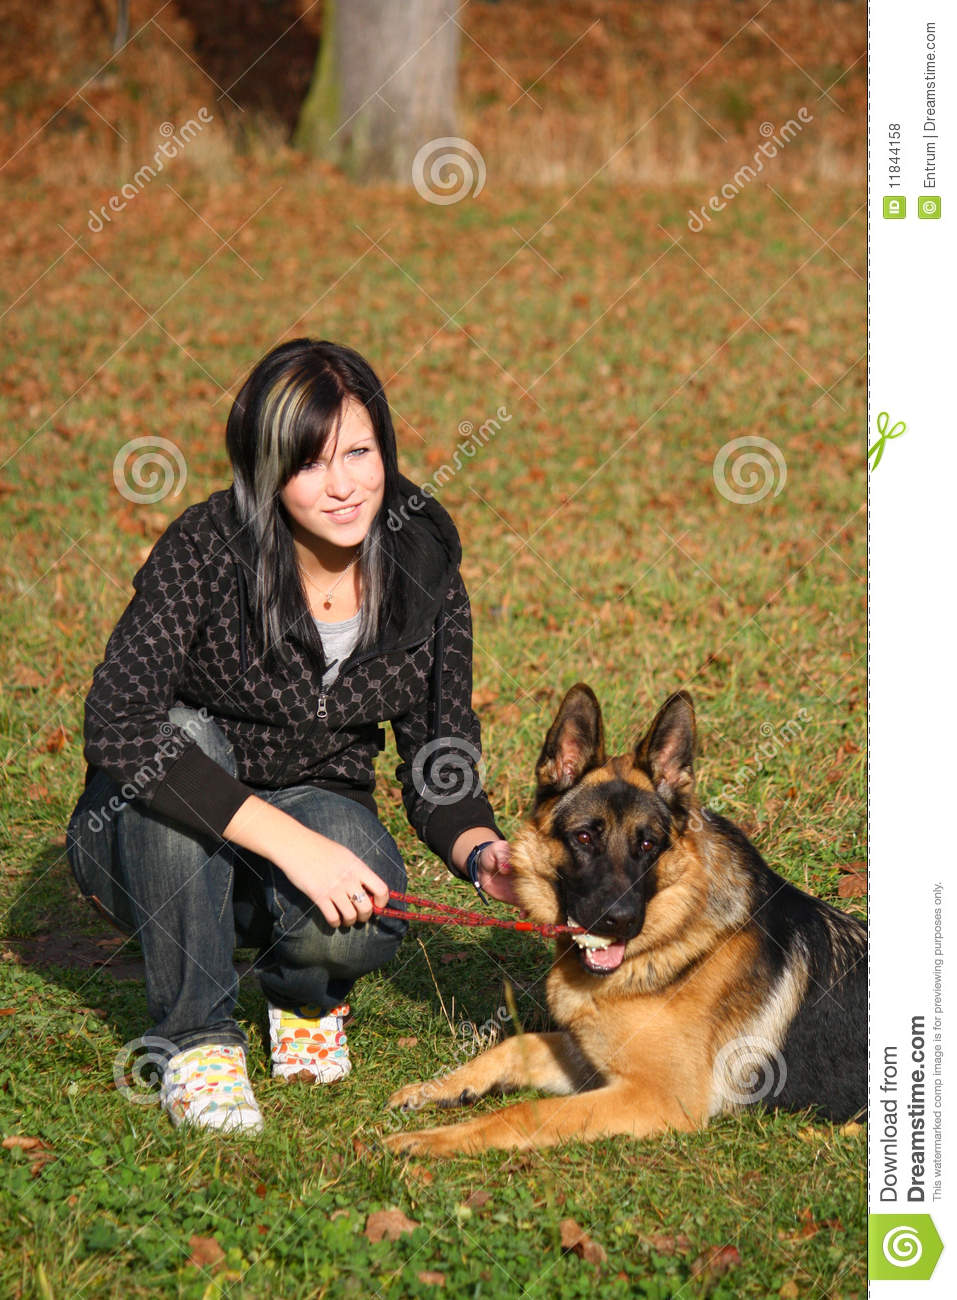 teen girl with dog royalty free stock photos   image 11844158